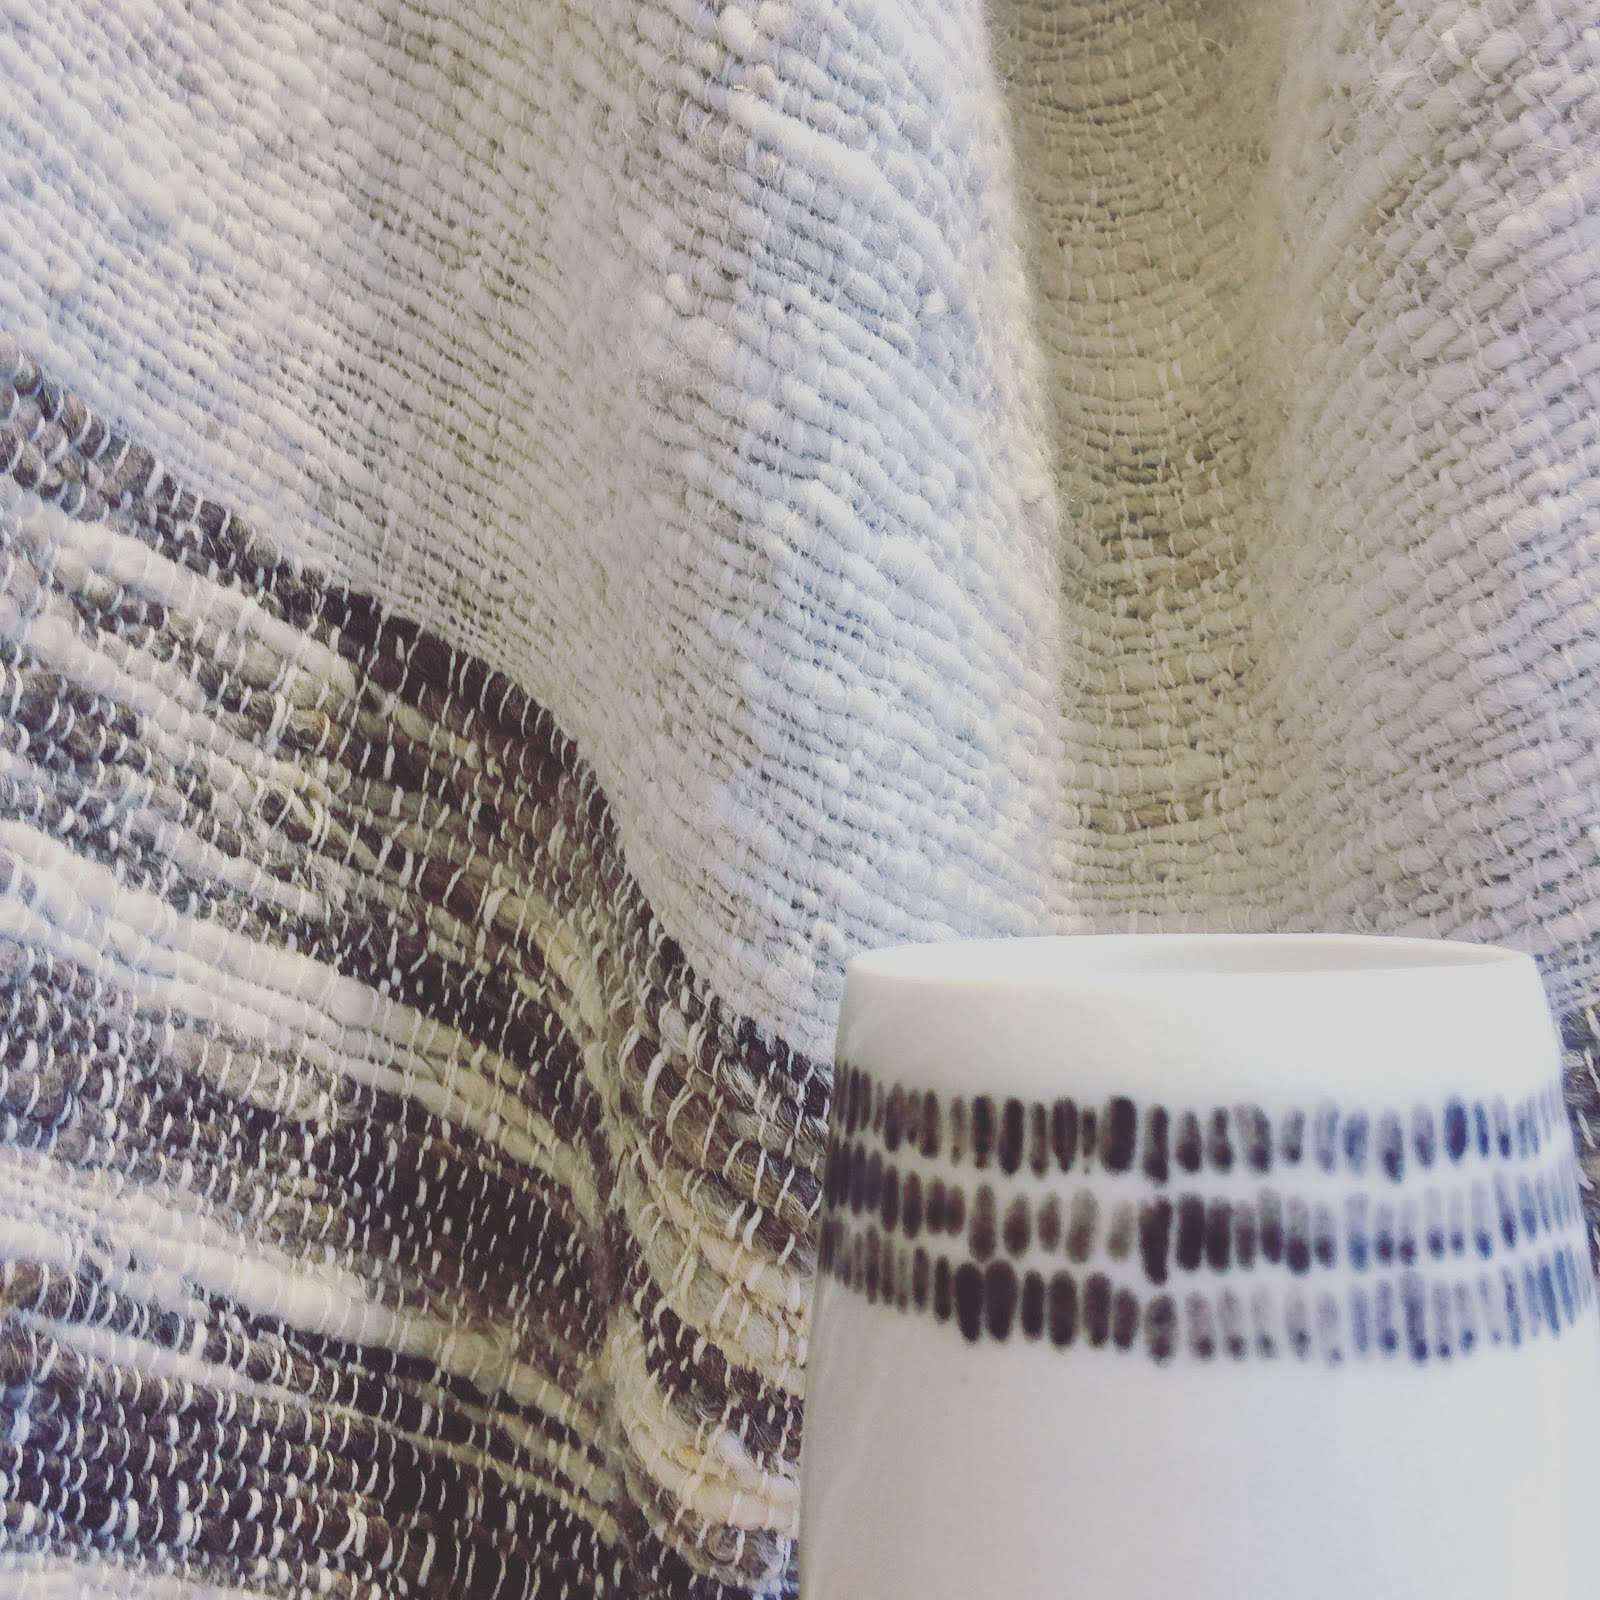 Elaine Bolt Ceramics - Warp and Weft vessels with Imogen Di Sapia blanket